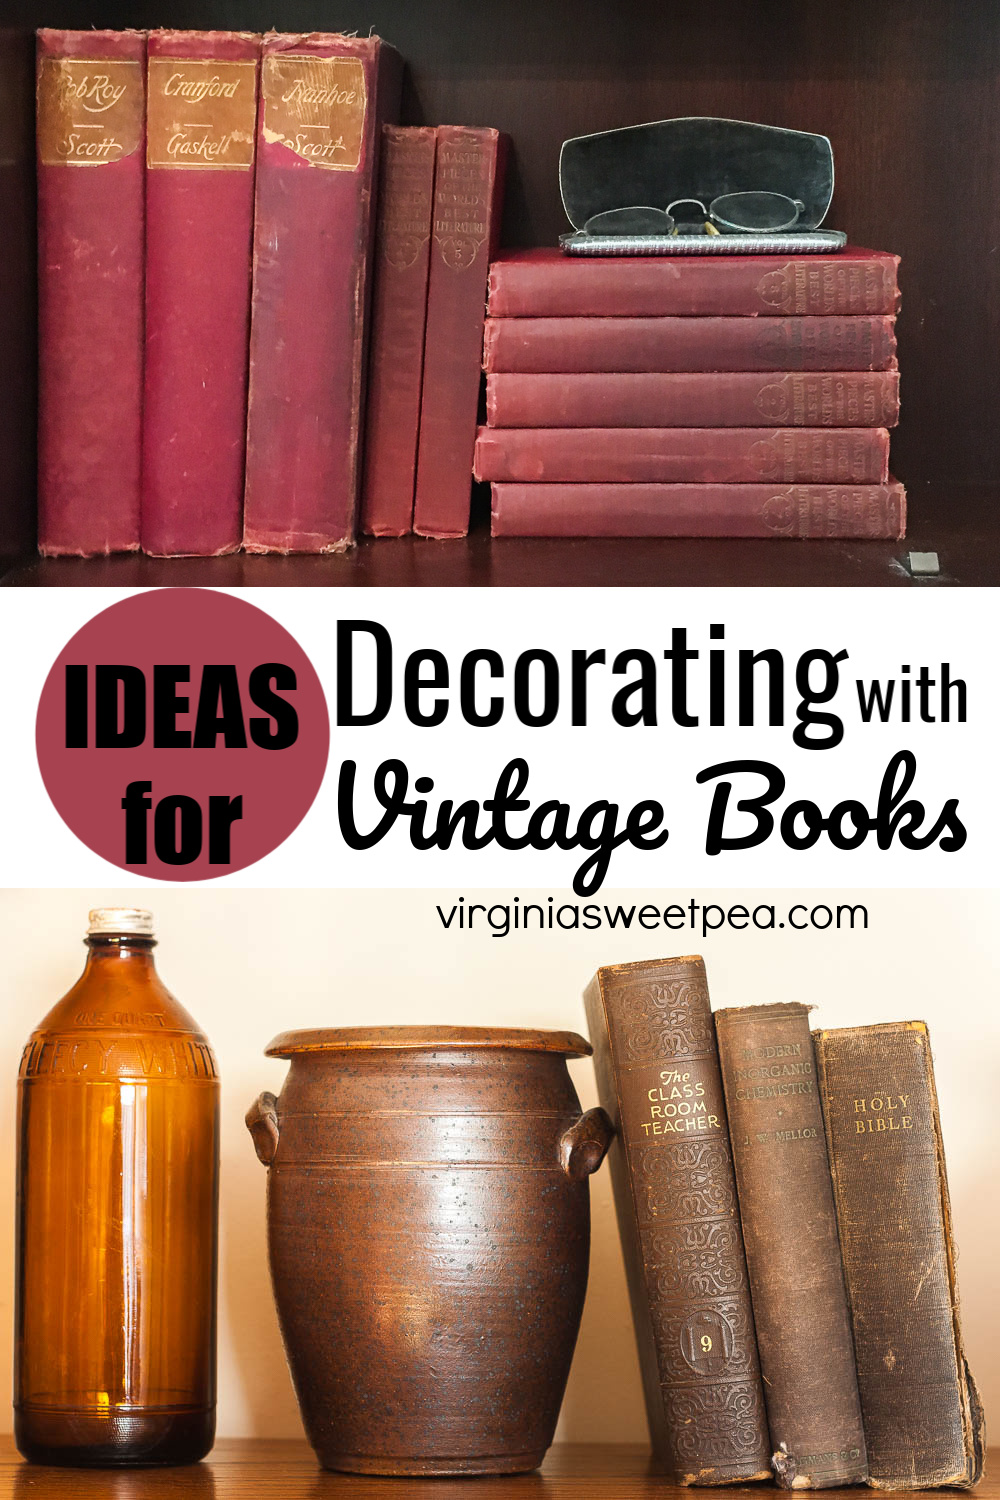 Ideas for Decorating with Vintage Books - Get ideas for ways you can use vintage books in your home decor. #vintagebooks #decoratingwithvintage #vintagedecorideas via @spaula